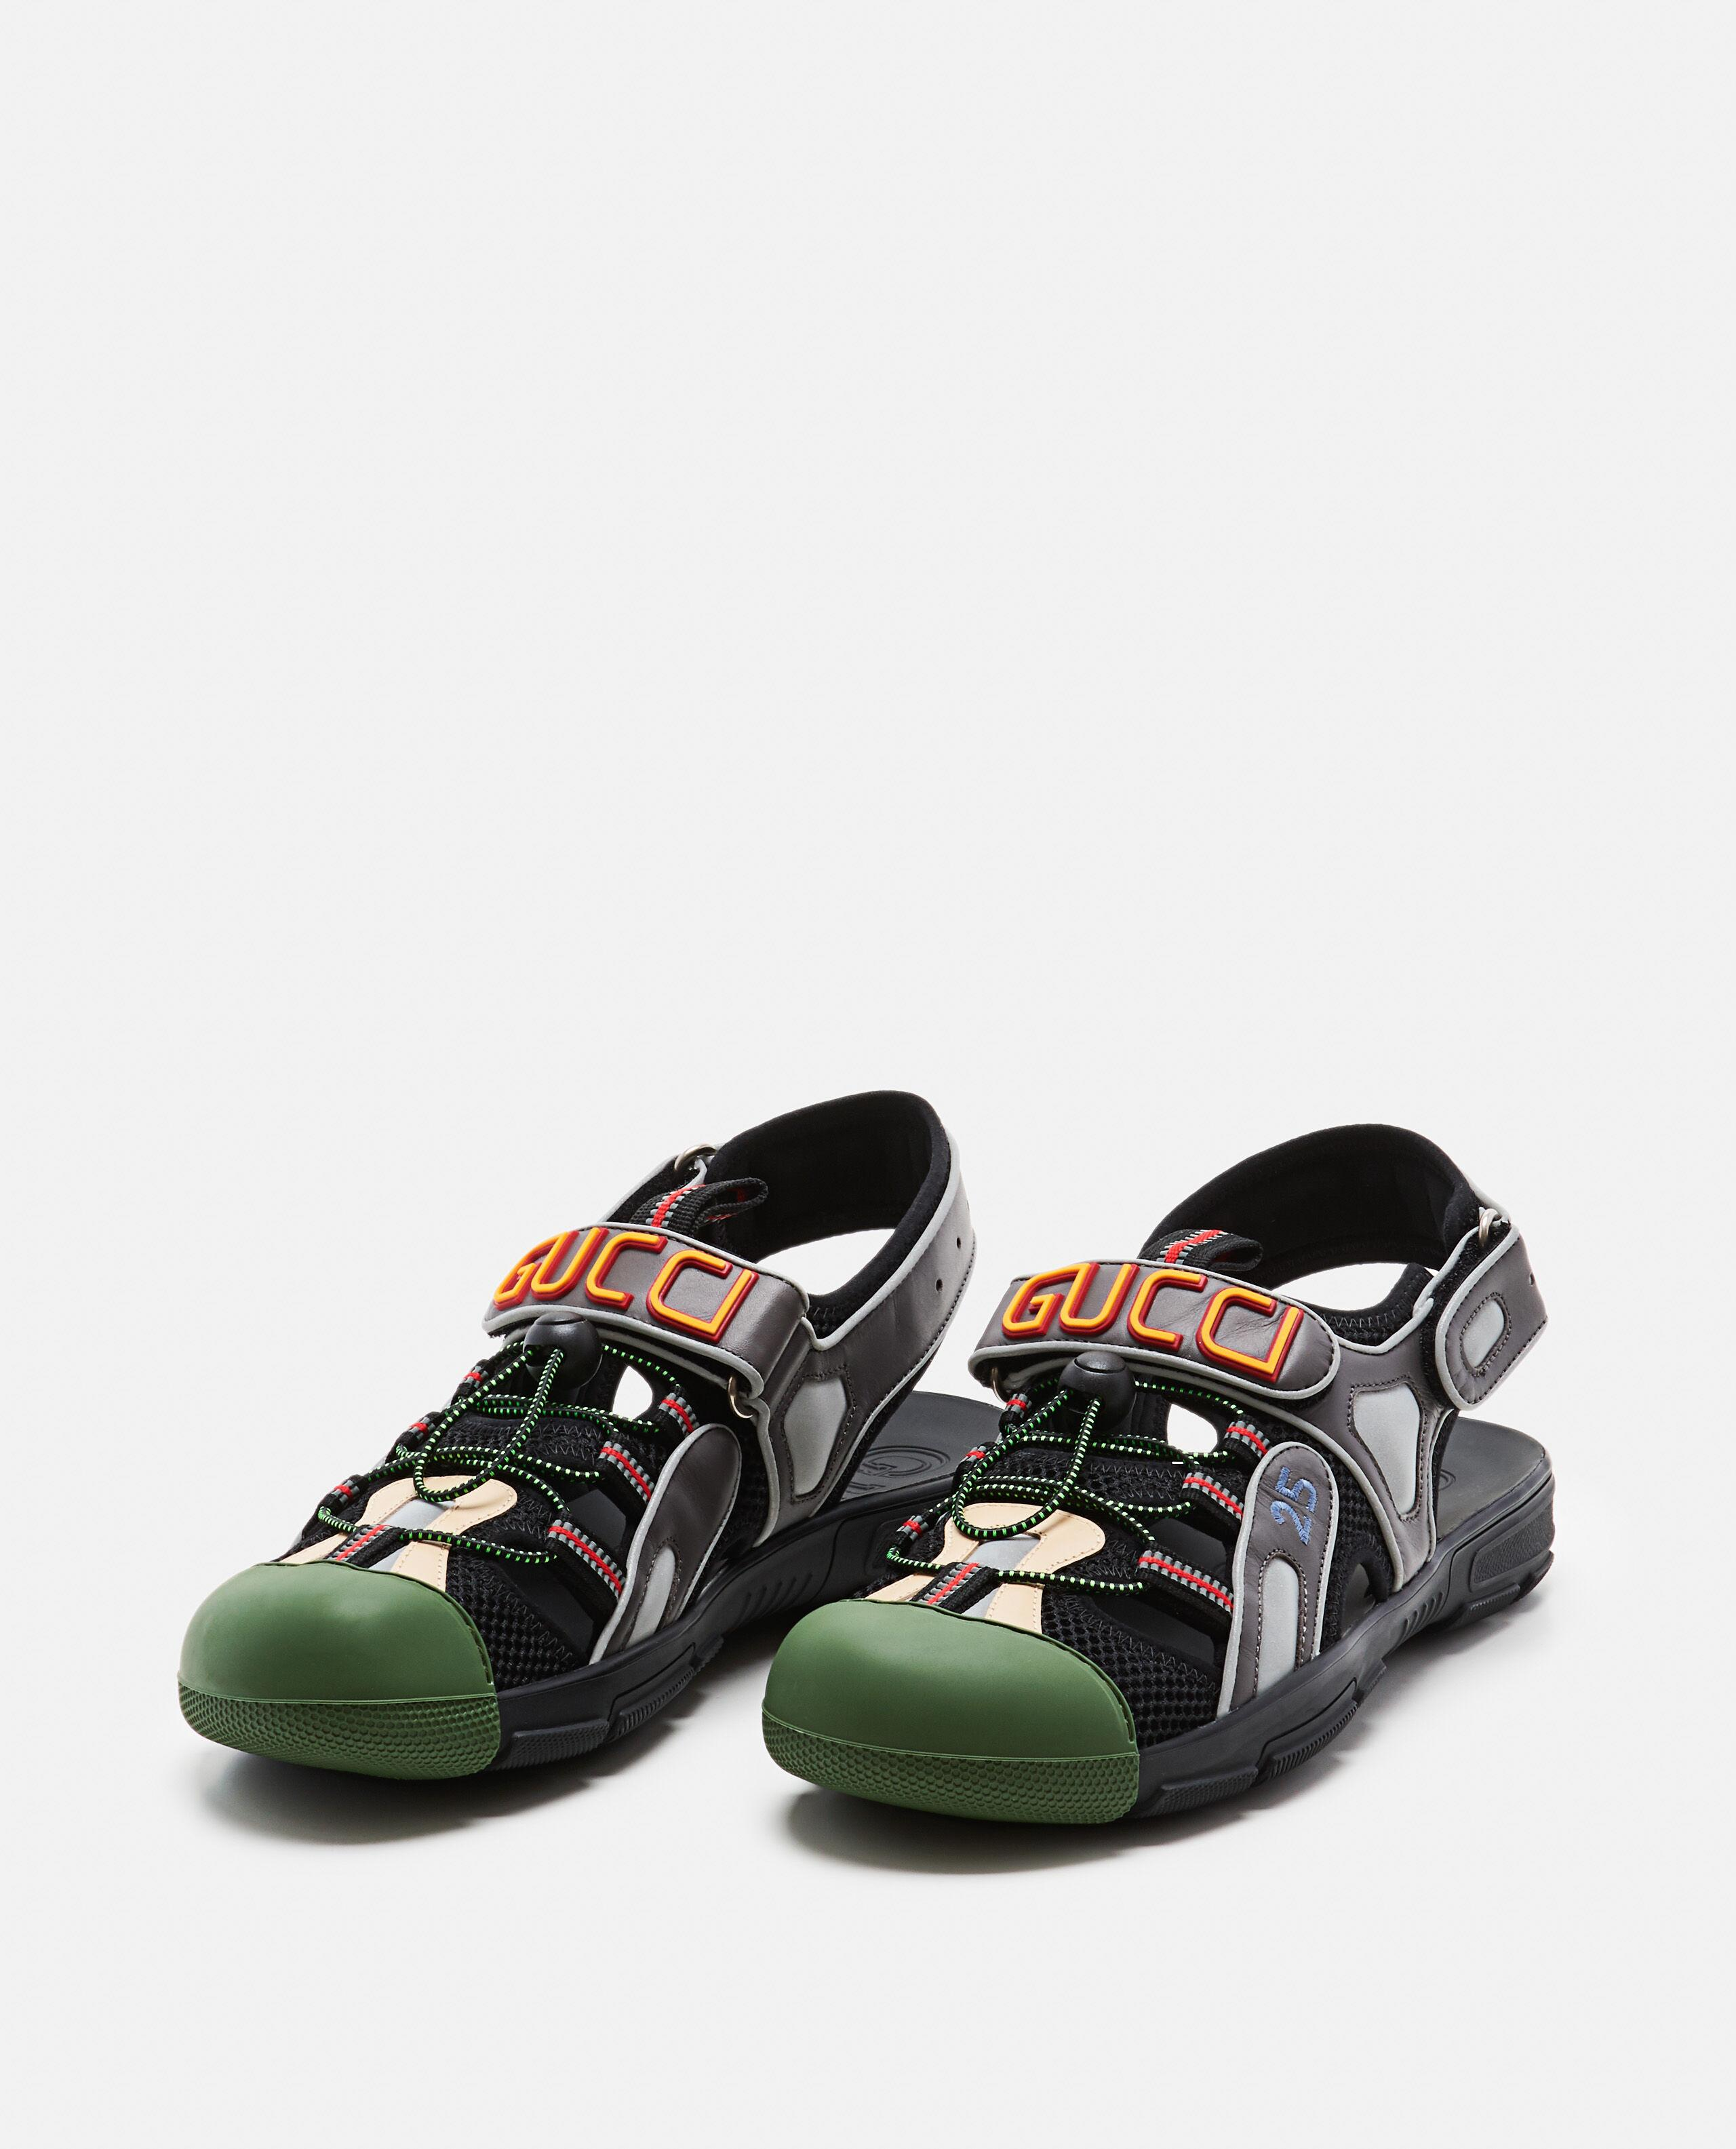 aefc76888 Gucci Leather And Mesh Sandal in Green for Men - Lyst